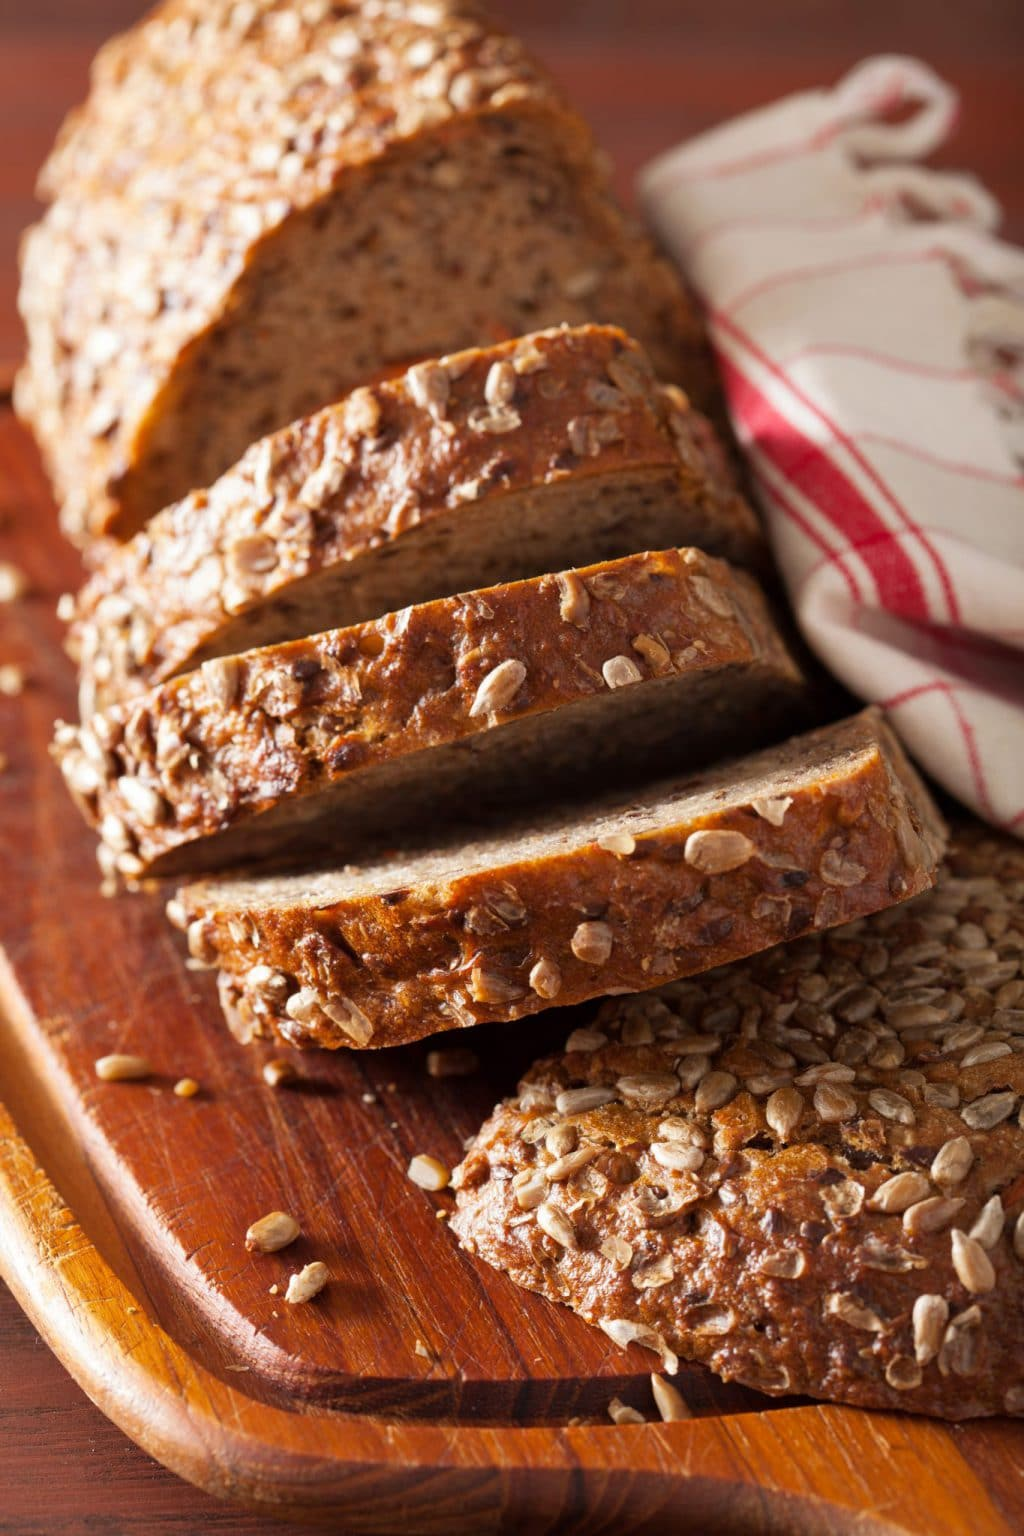 healthy-whole-grain-bread-with-carrot-and-seeds-PBZAFUV